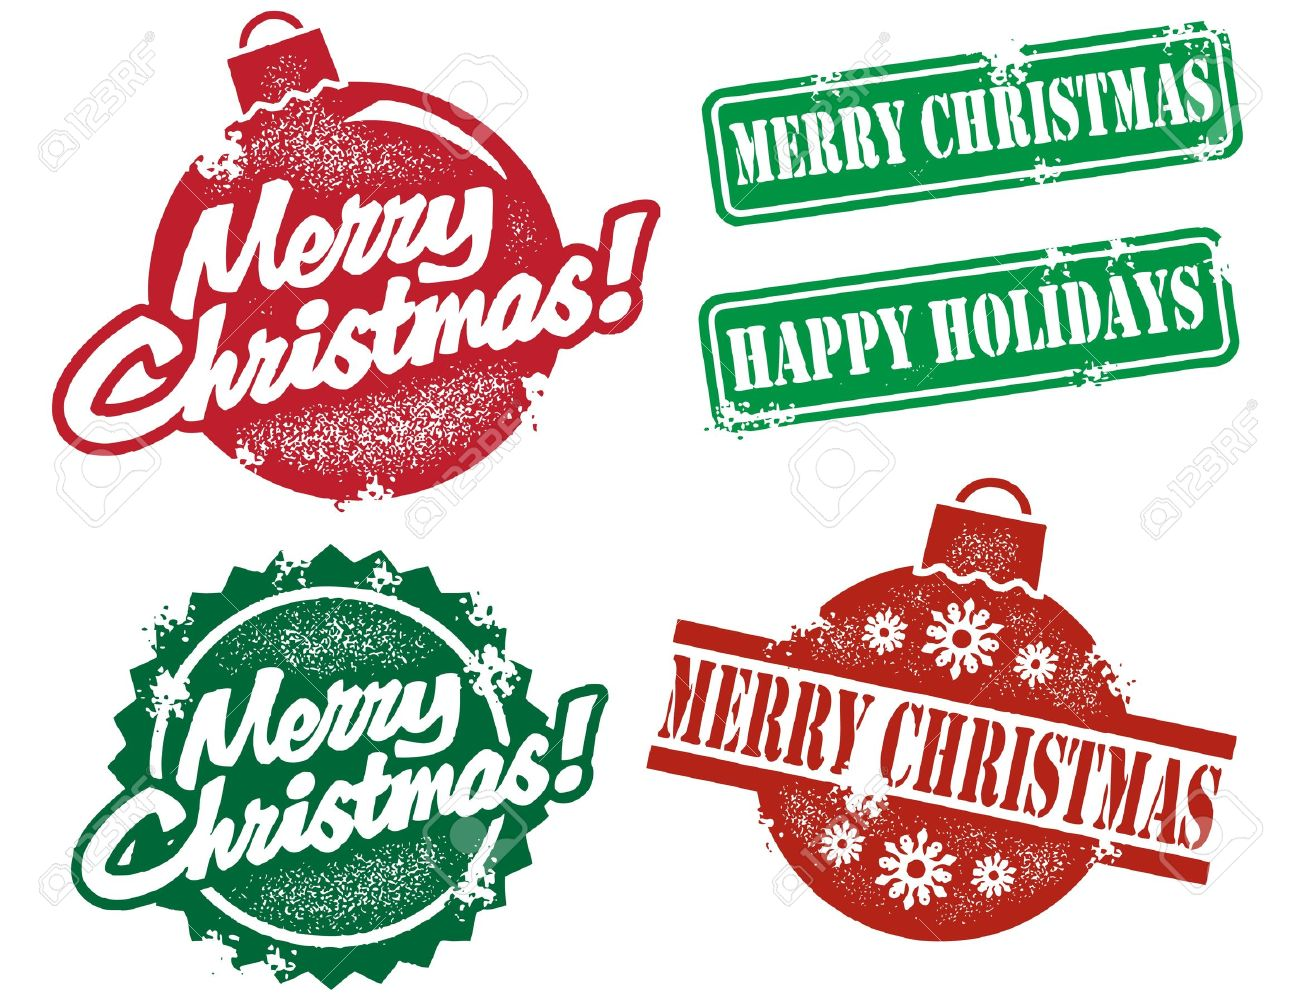 Vintage Style Christmas Stamps Stock Vector - 10932627